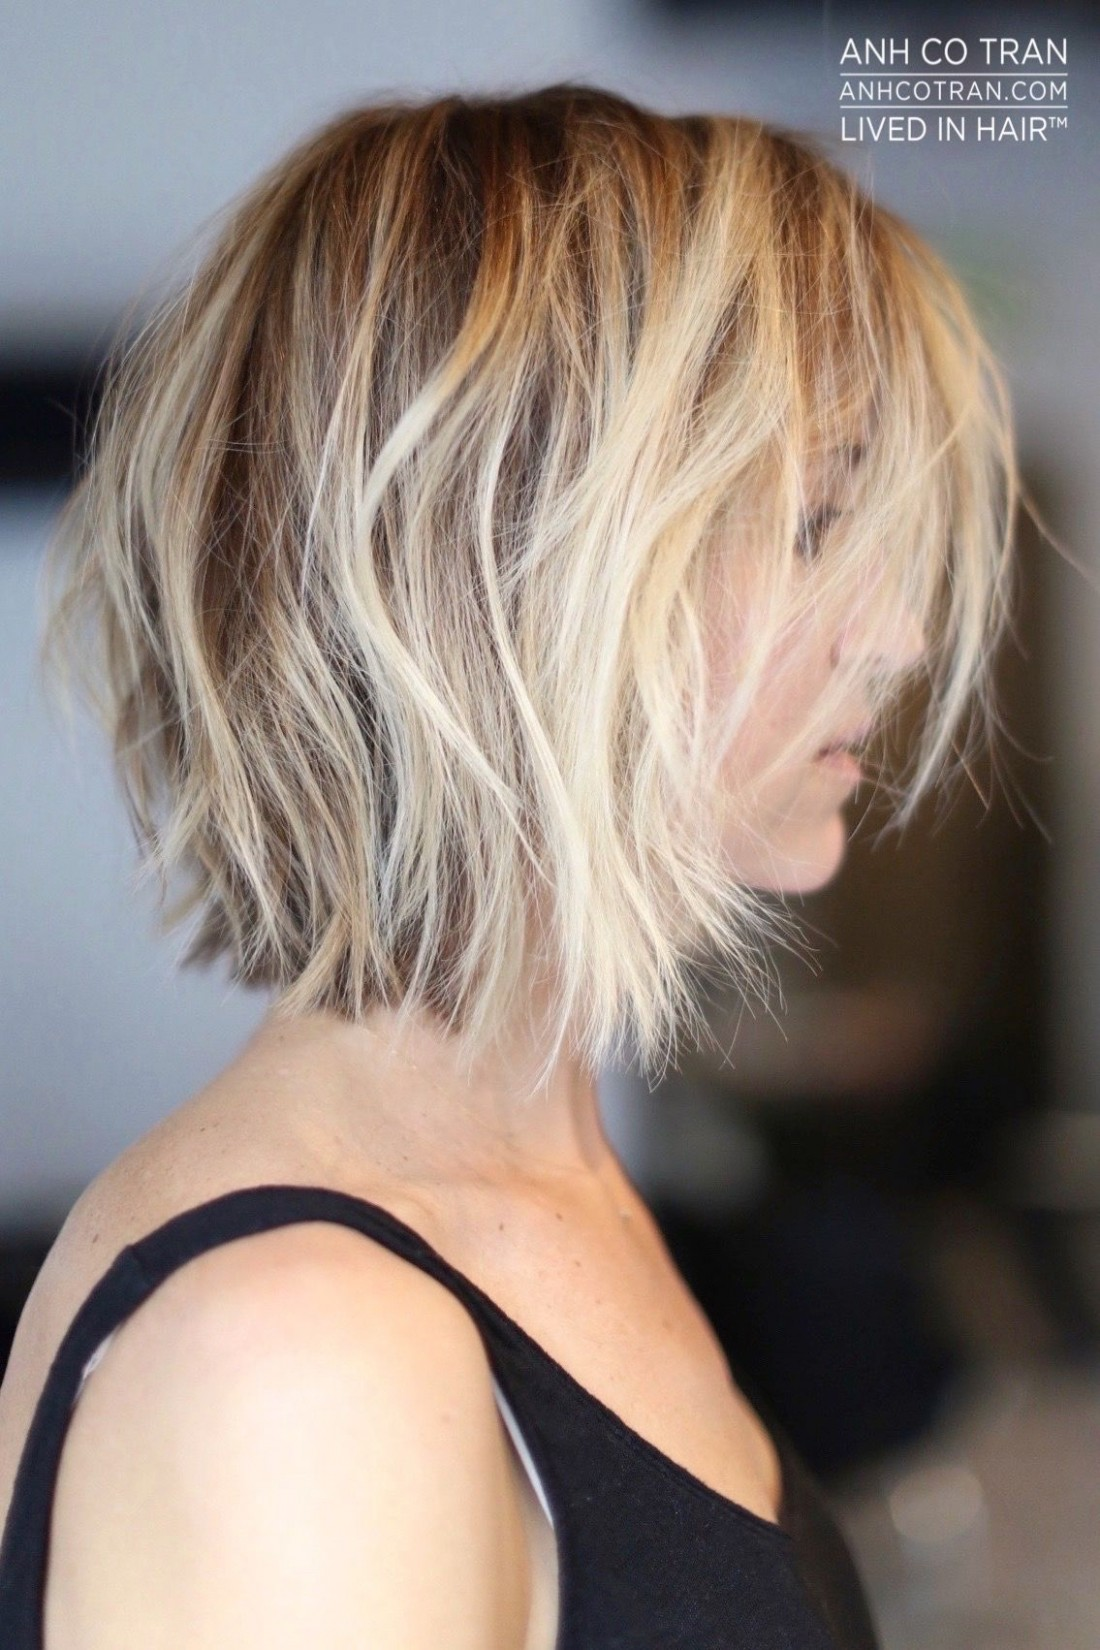 Like The Face Framing Layers And Length Great Hair, Hair Styles Face Framing Layers Short Hair